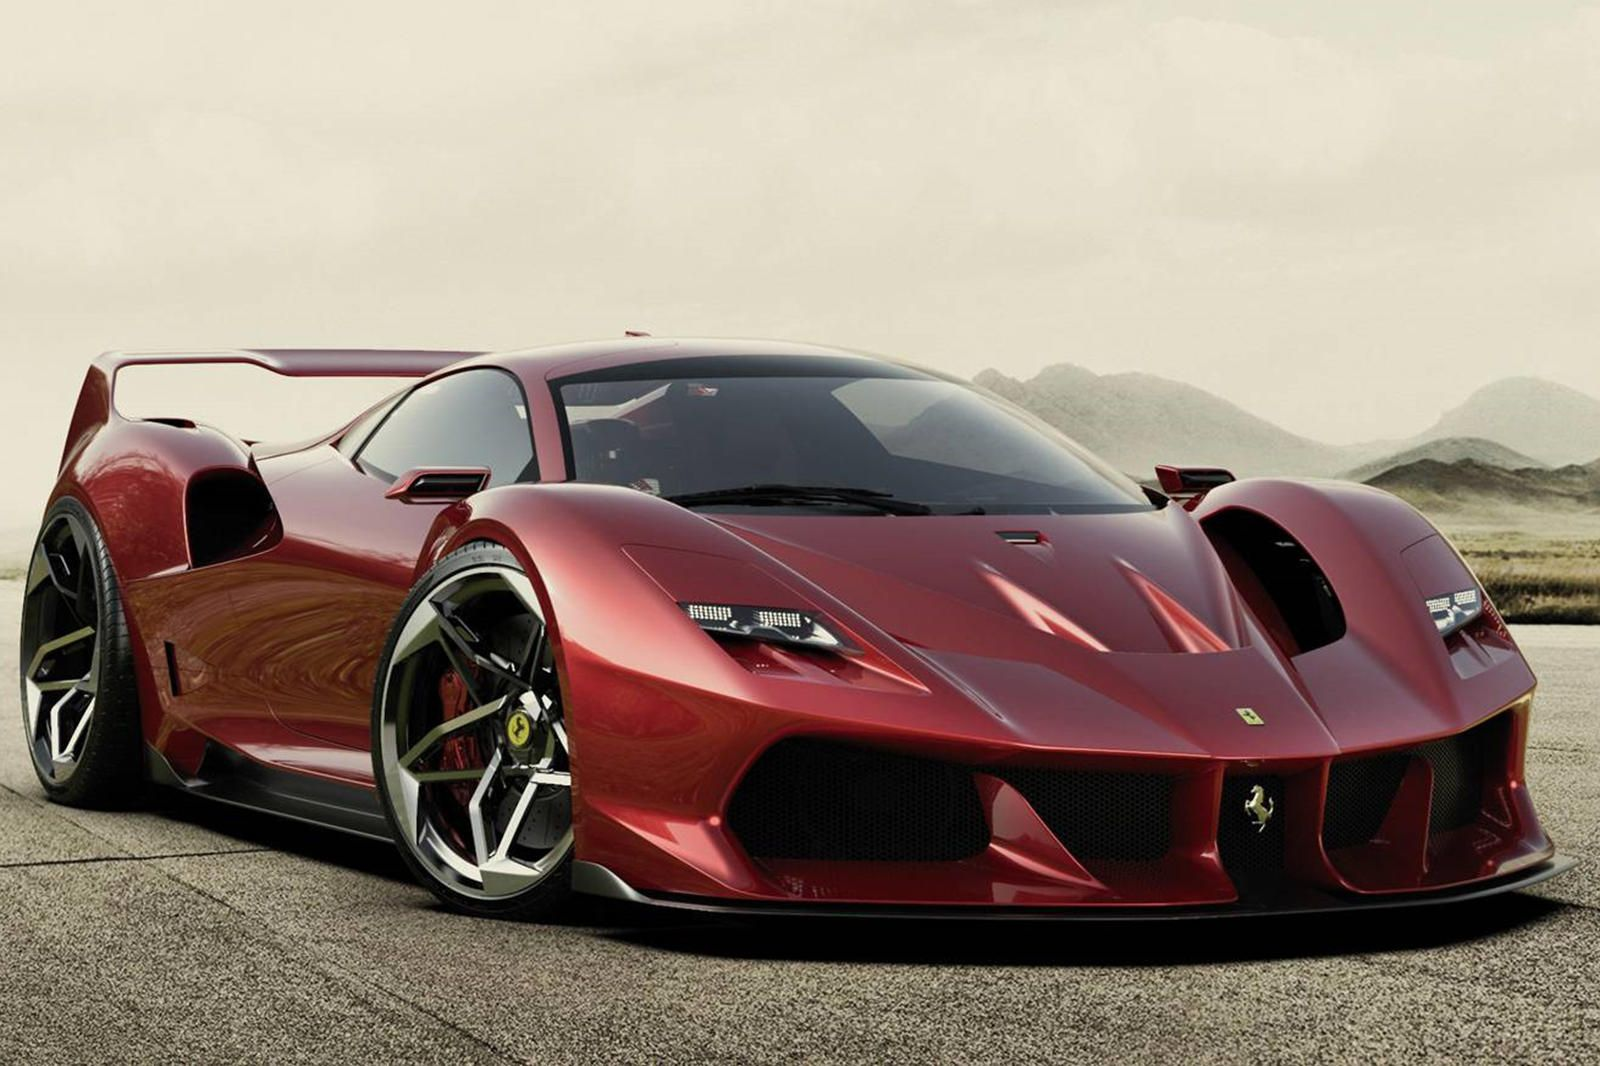 Ferrari F40 Redesigned As Stunning Modern Day Supercar Carbuzz Ferrari F40 Concept Cars Sports Cars